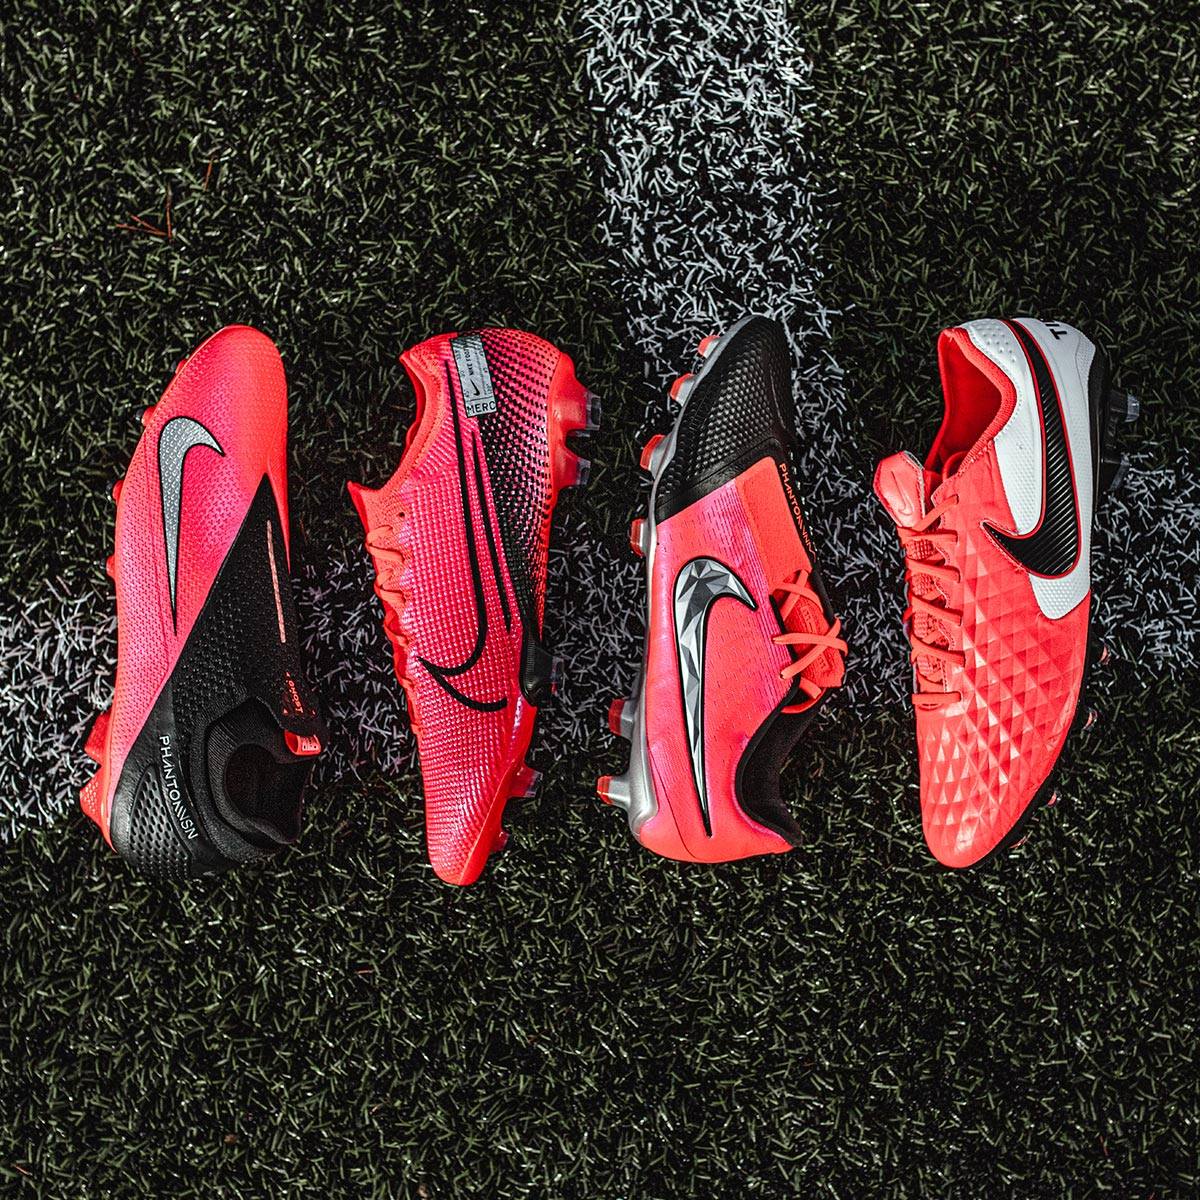 Nike Mercurial Superfly 7 Academy Future Lab